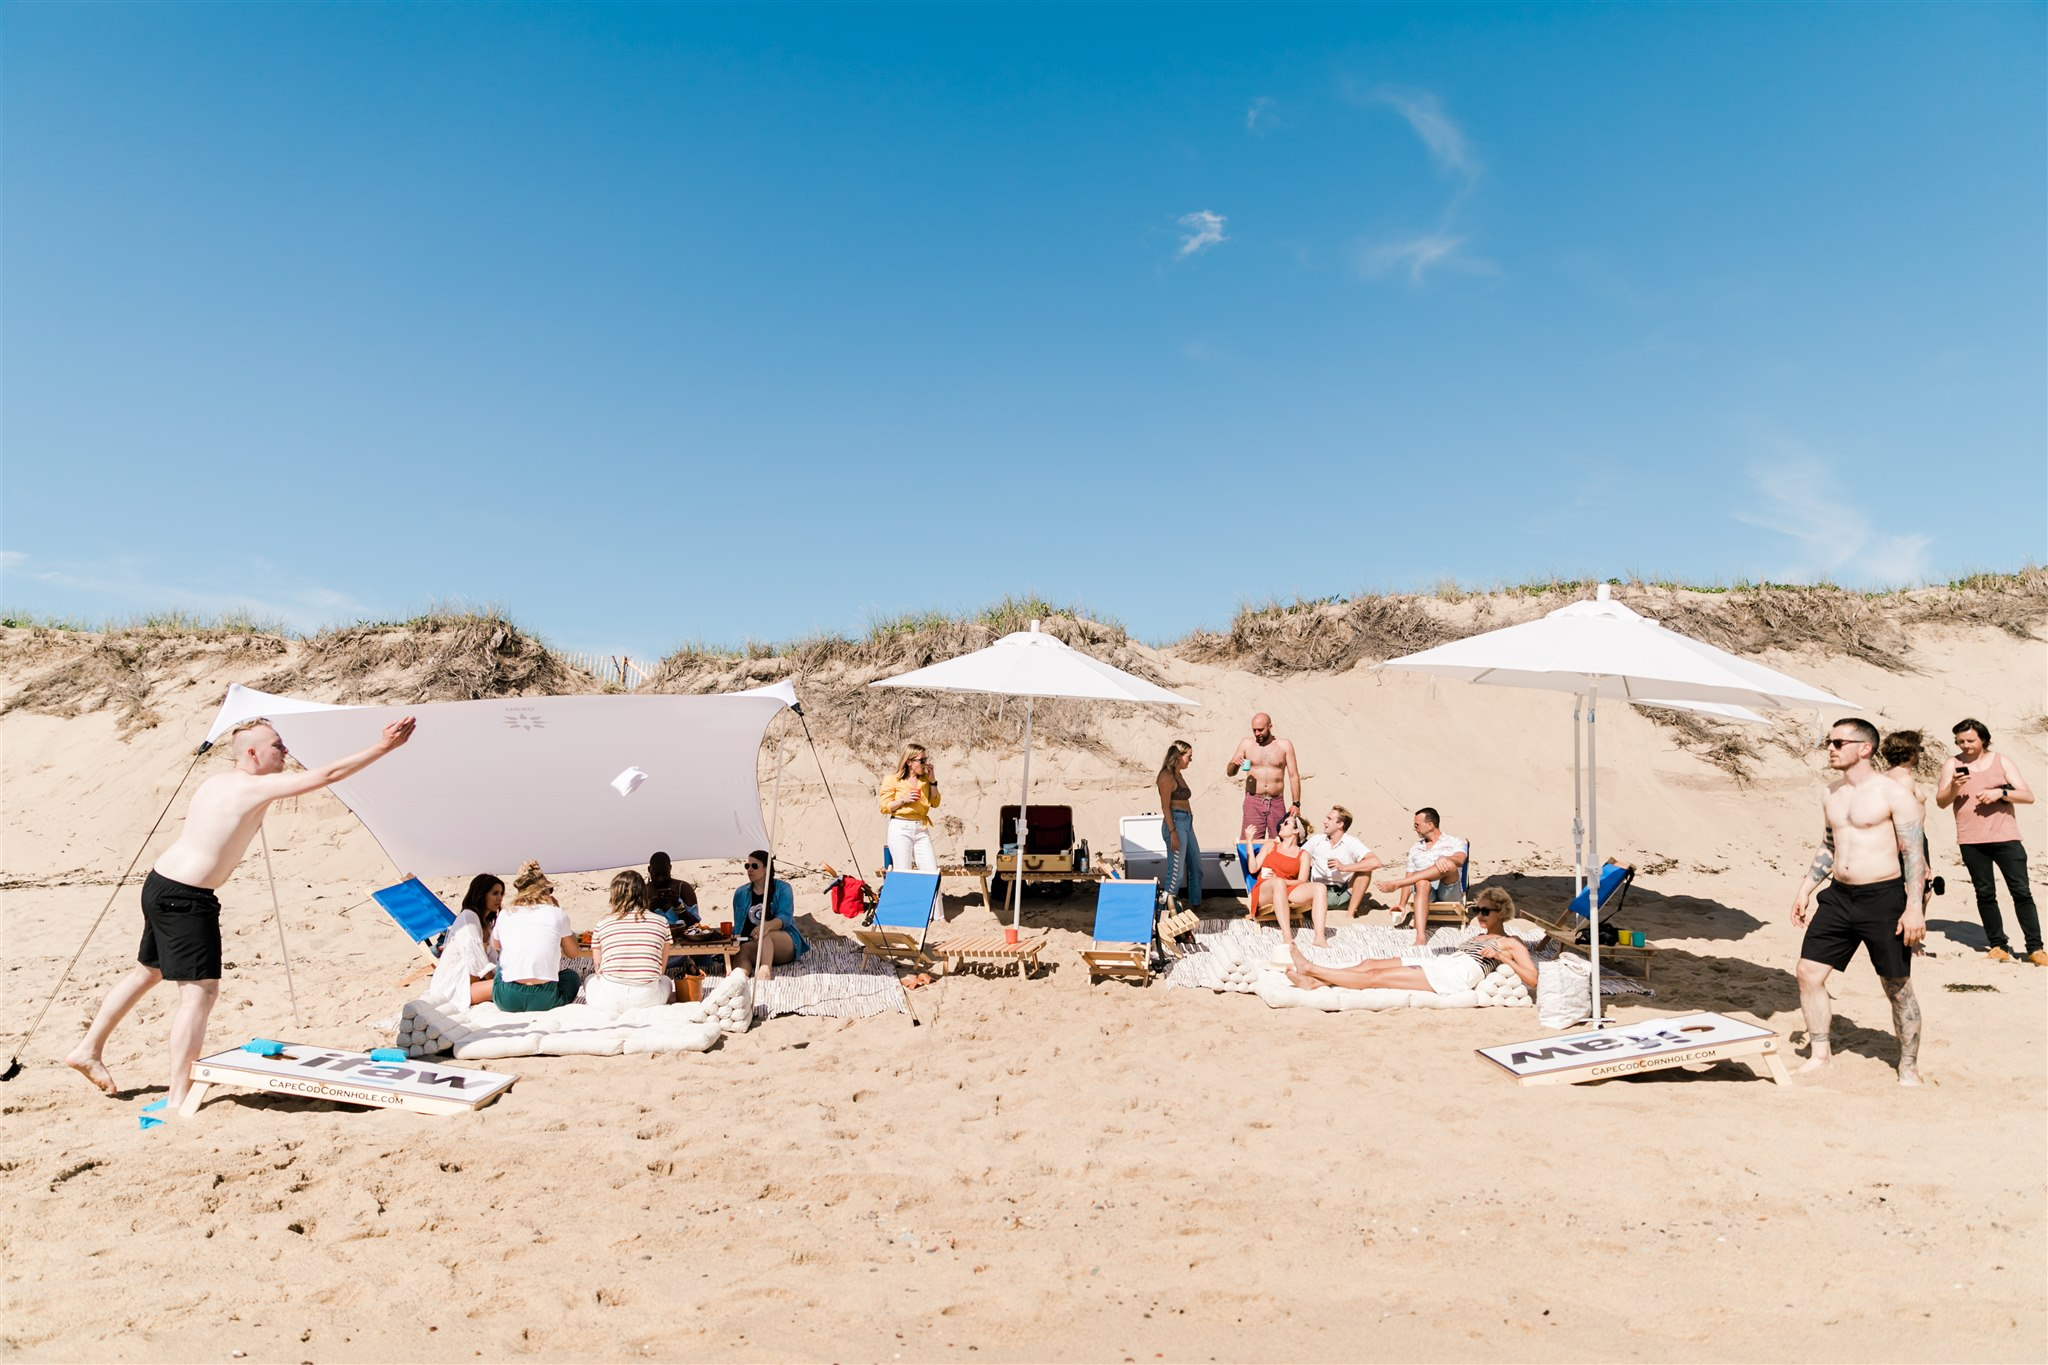 Beach hangout in Ptown, Cape Cod with IFAW + Kin Travel